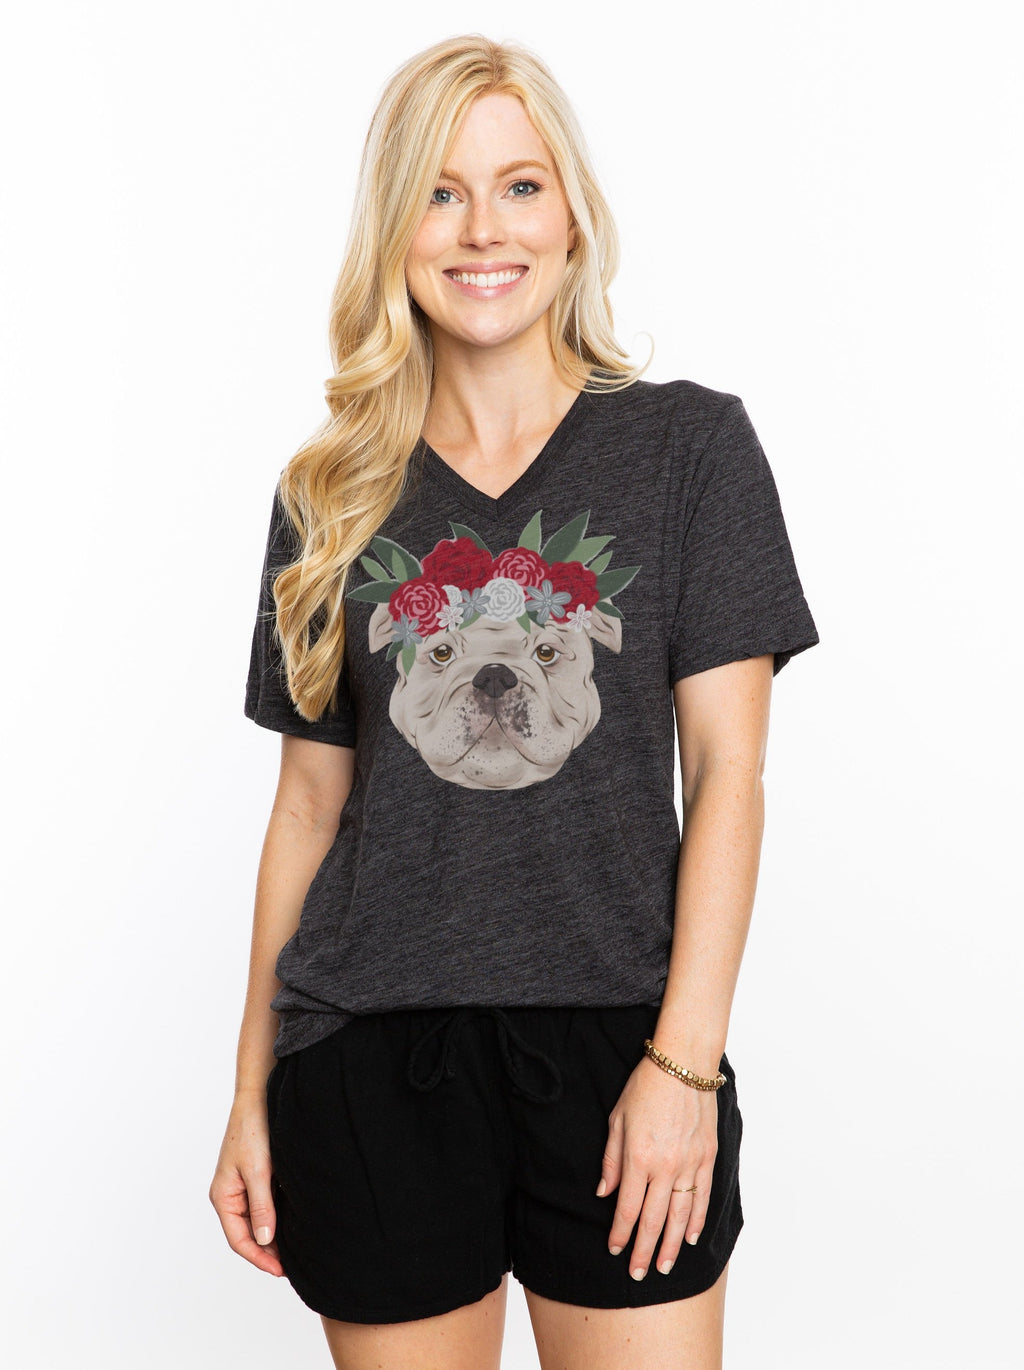 The Bulldog Crown V-Neck